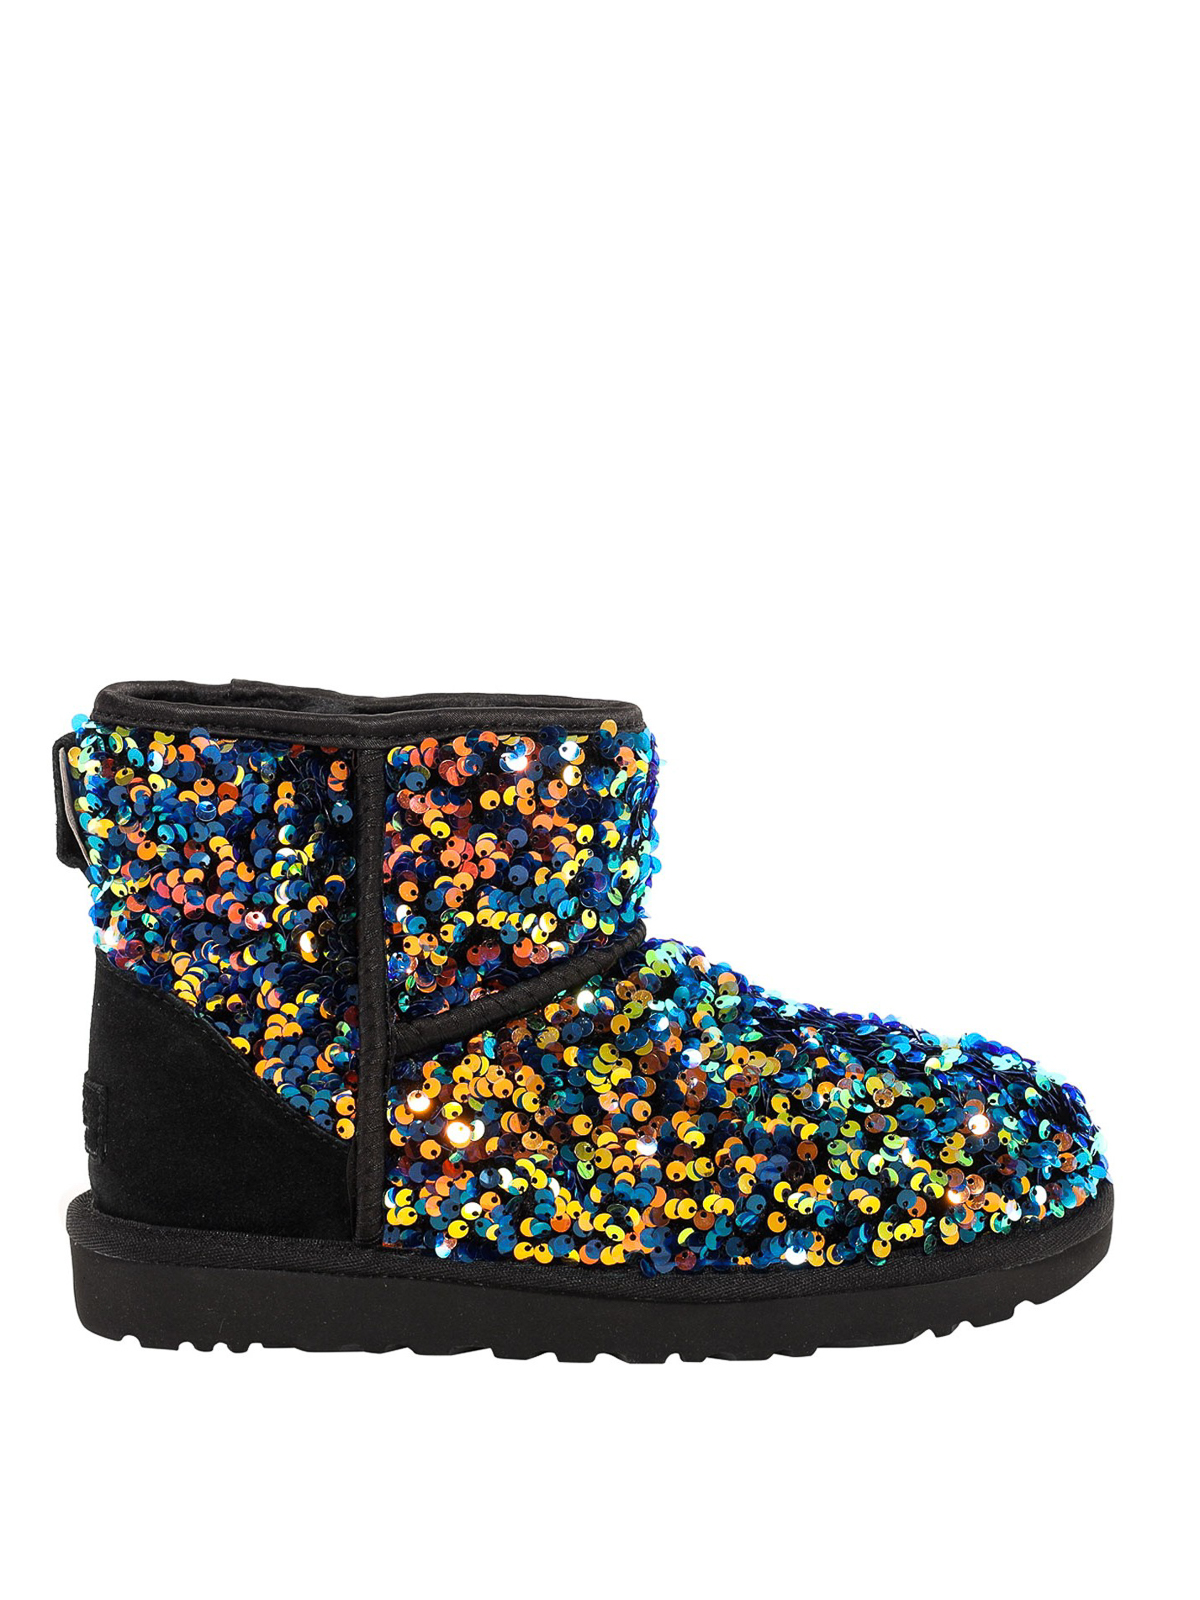 Ugg CLASSIC MINI GLITTER ANKLE BOOTS